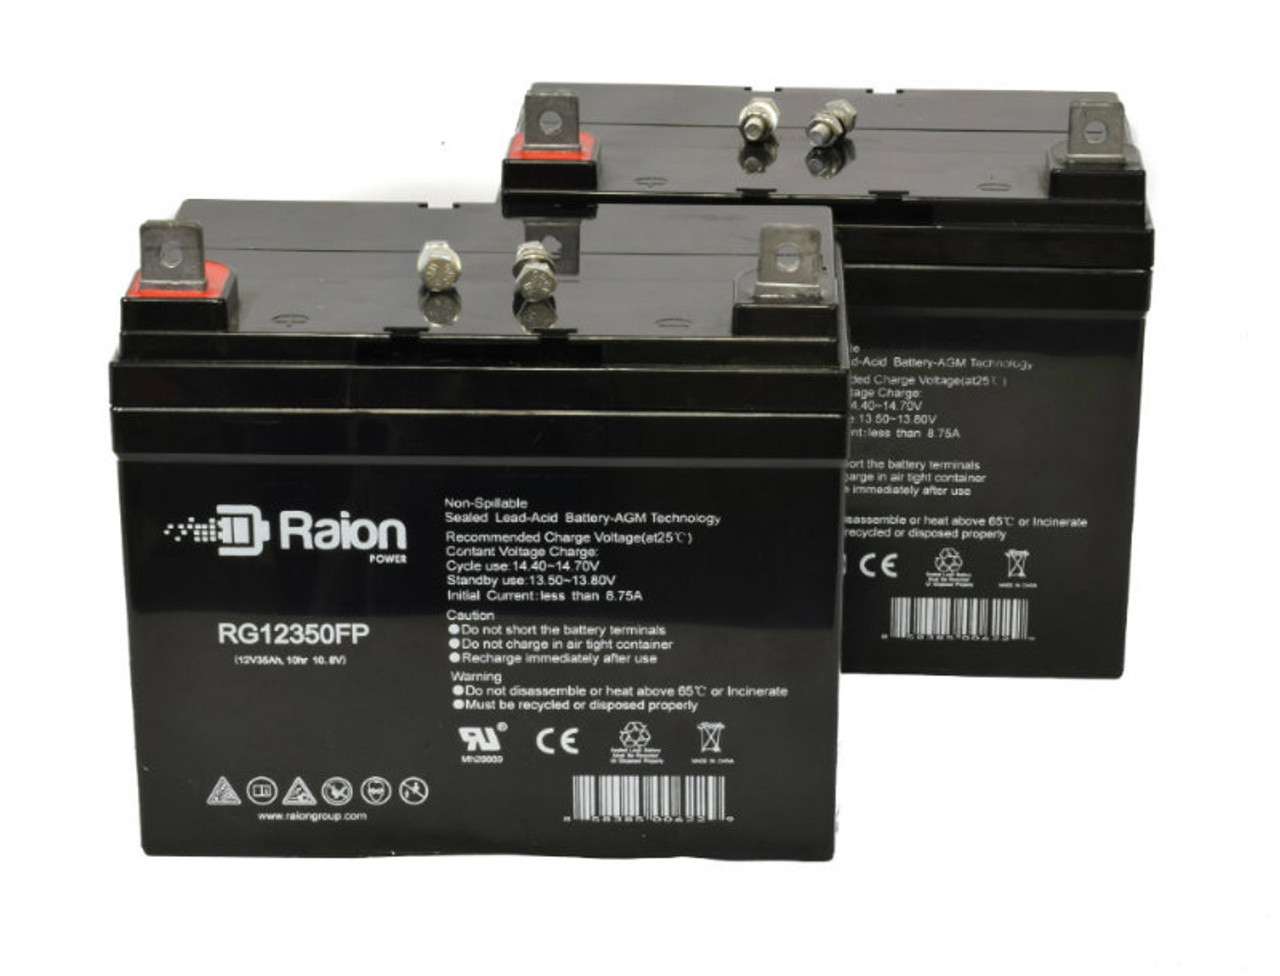 Raion Power RG12350FP Replacement Wheelchair Battery For Adjusted Semilor FR-1200 (2 Pack)